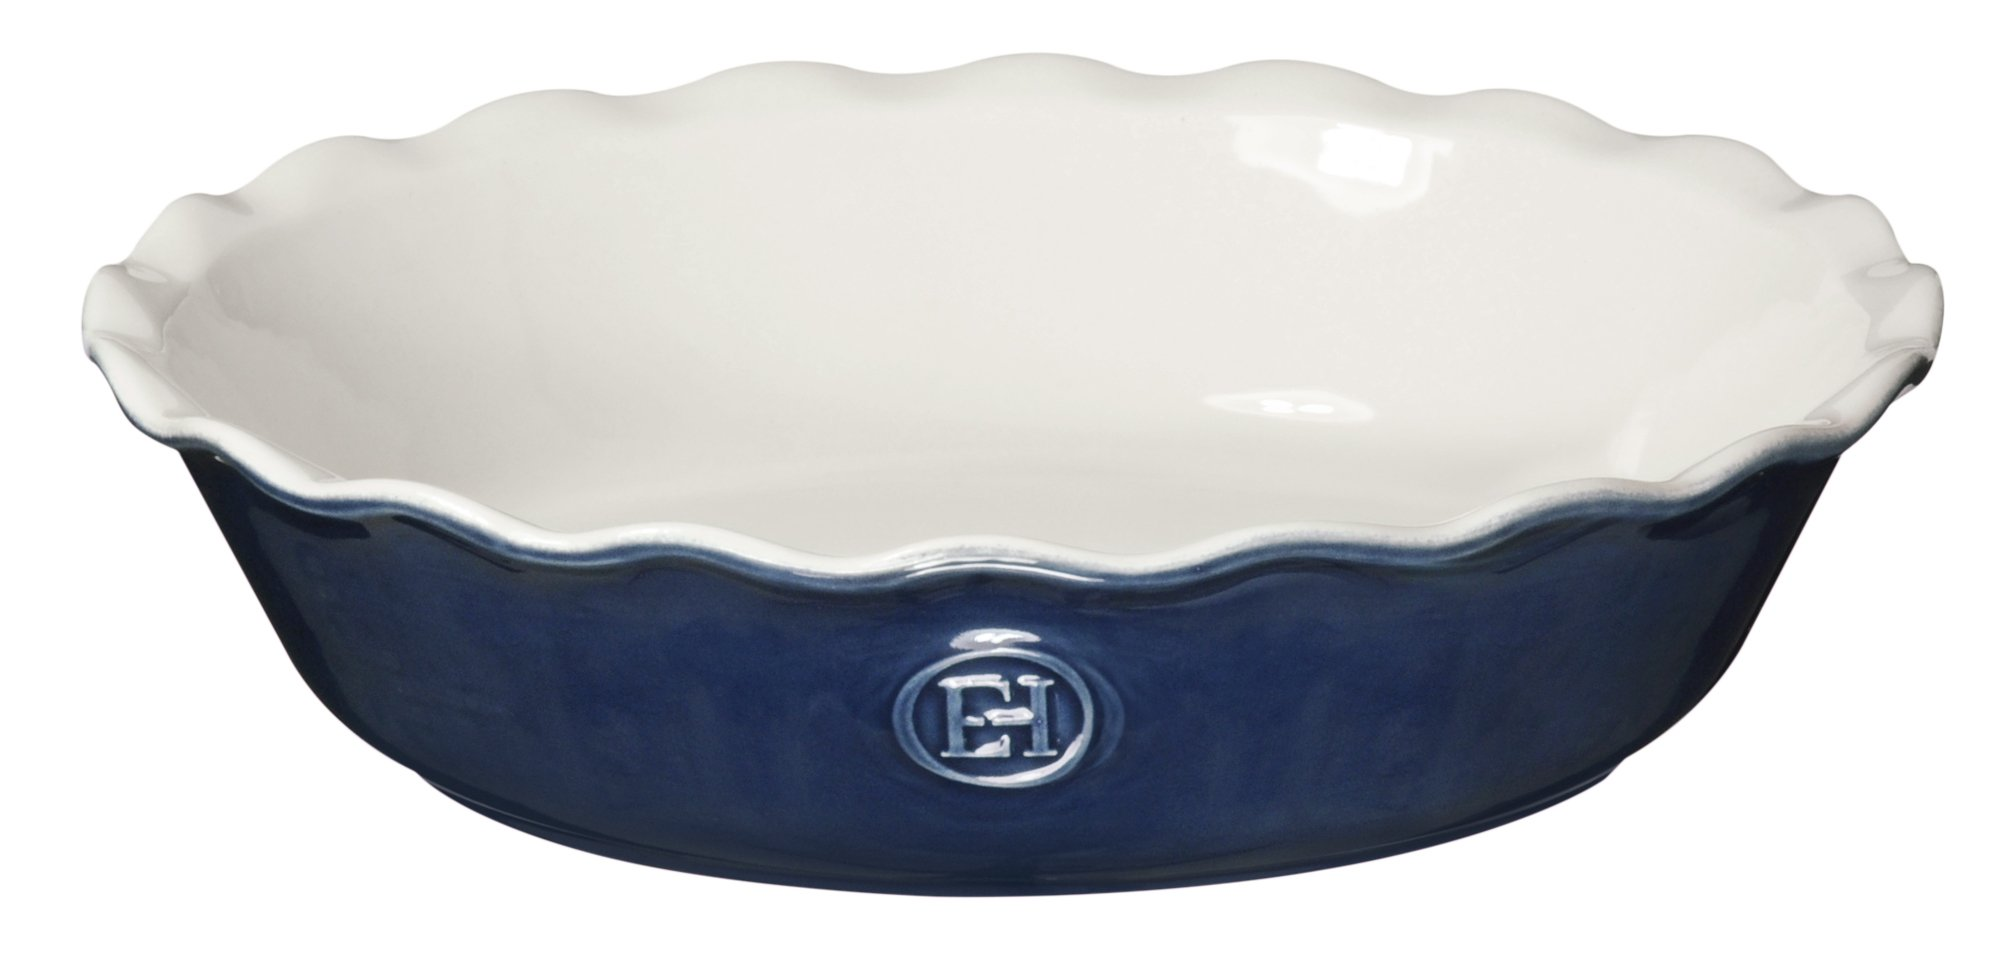 Emile Henry Made In France HR Modern Classics Pie Dish, 9'', Blue